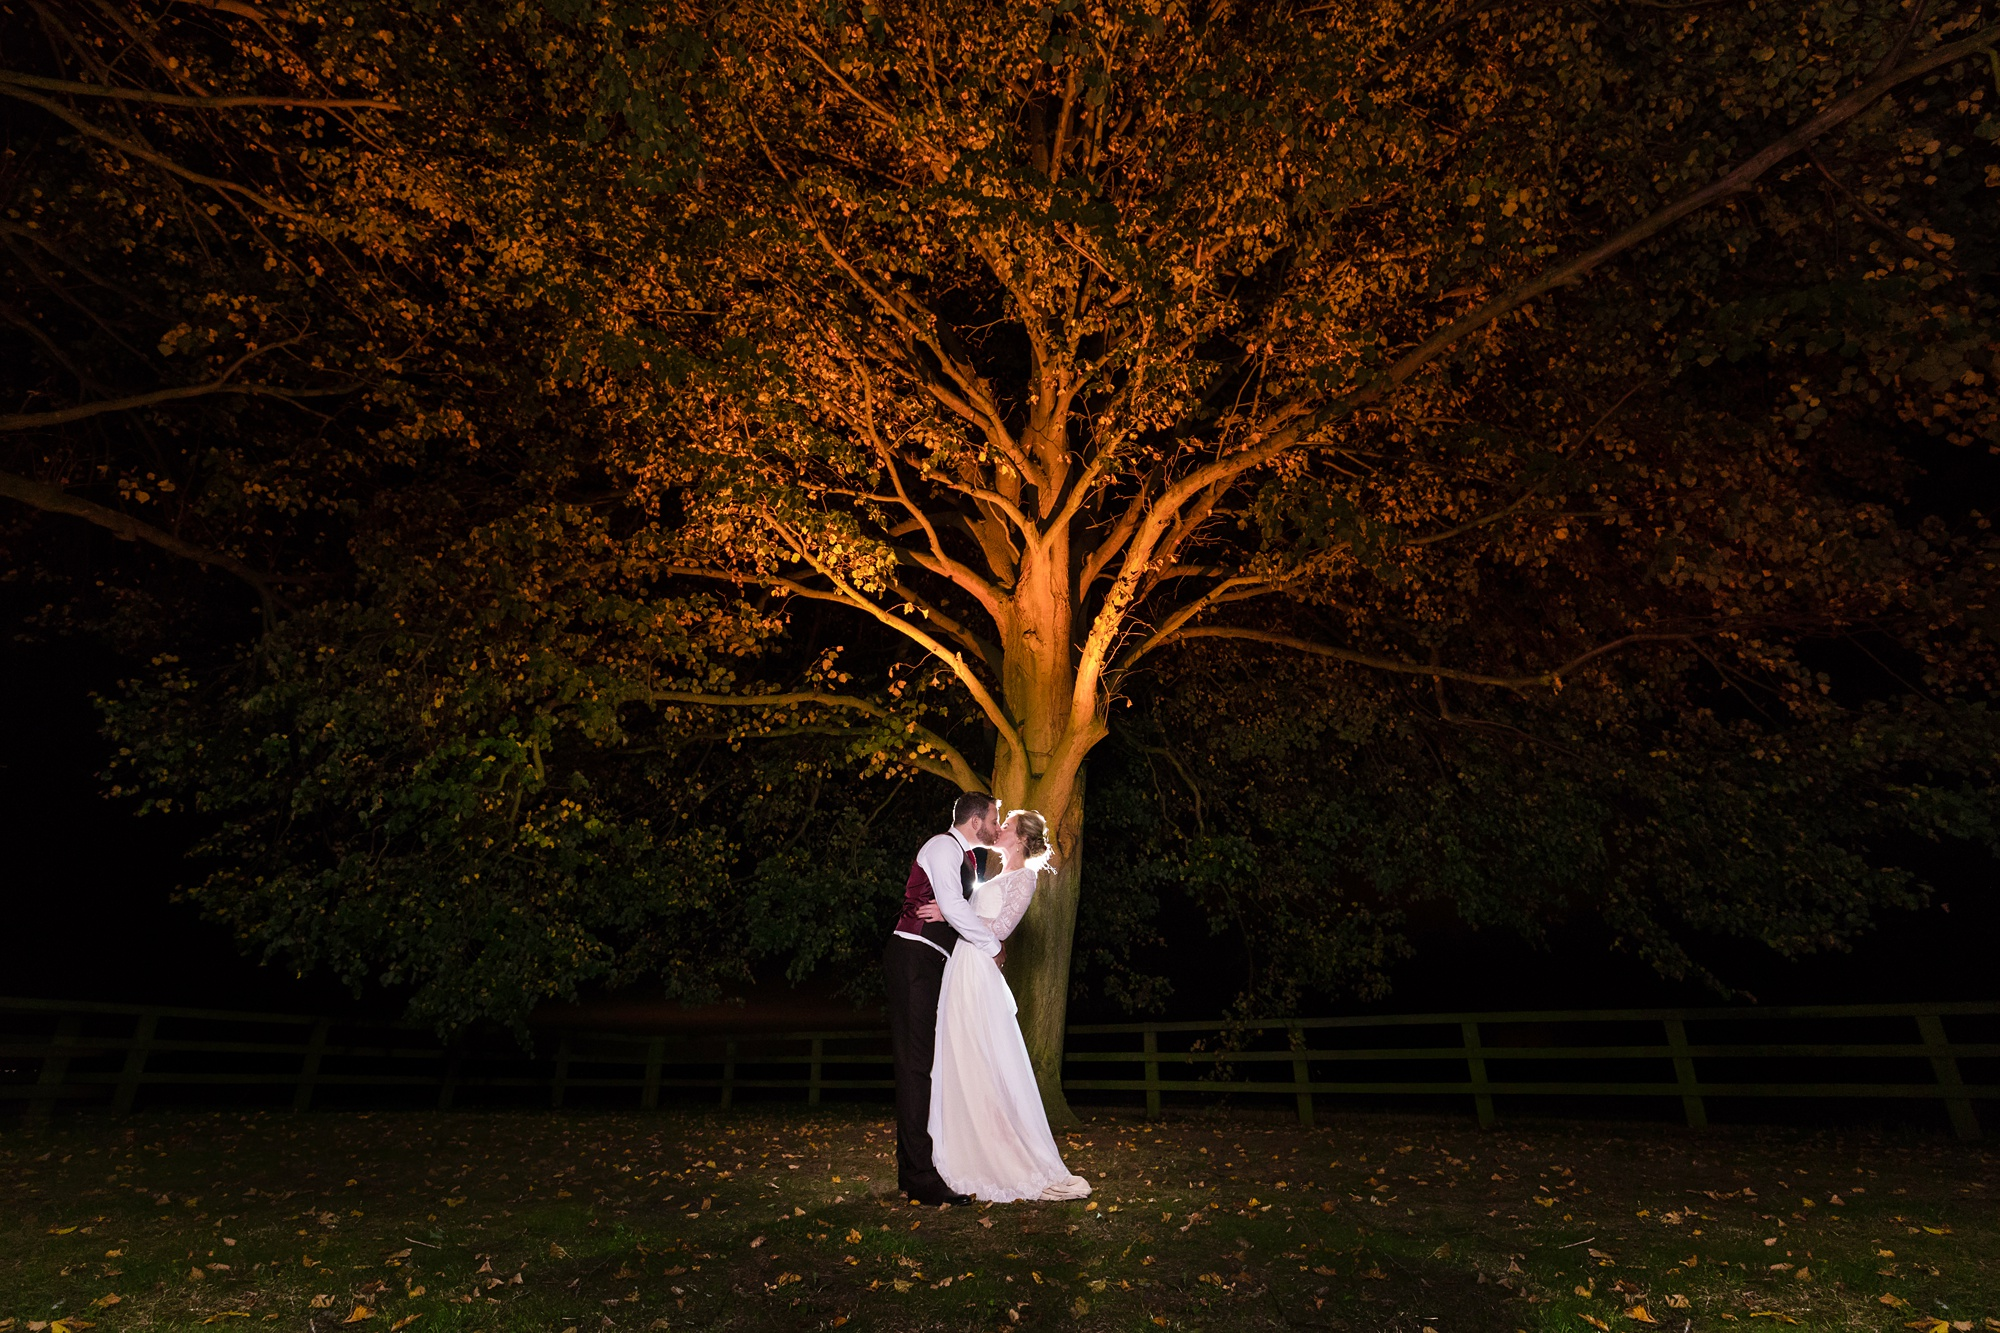 Yorkshire Wedding Photographers Red lit up tree